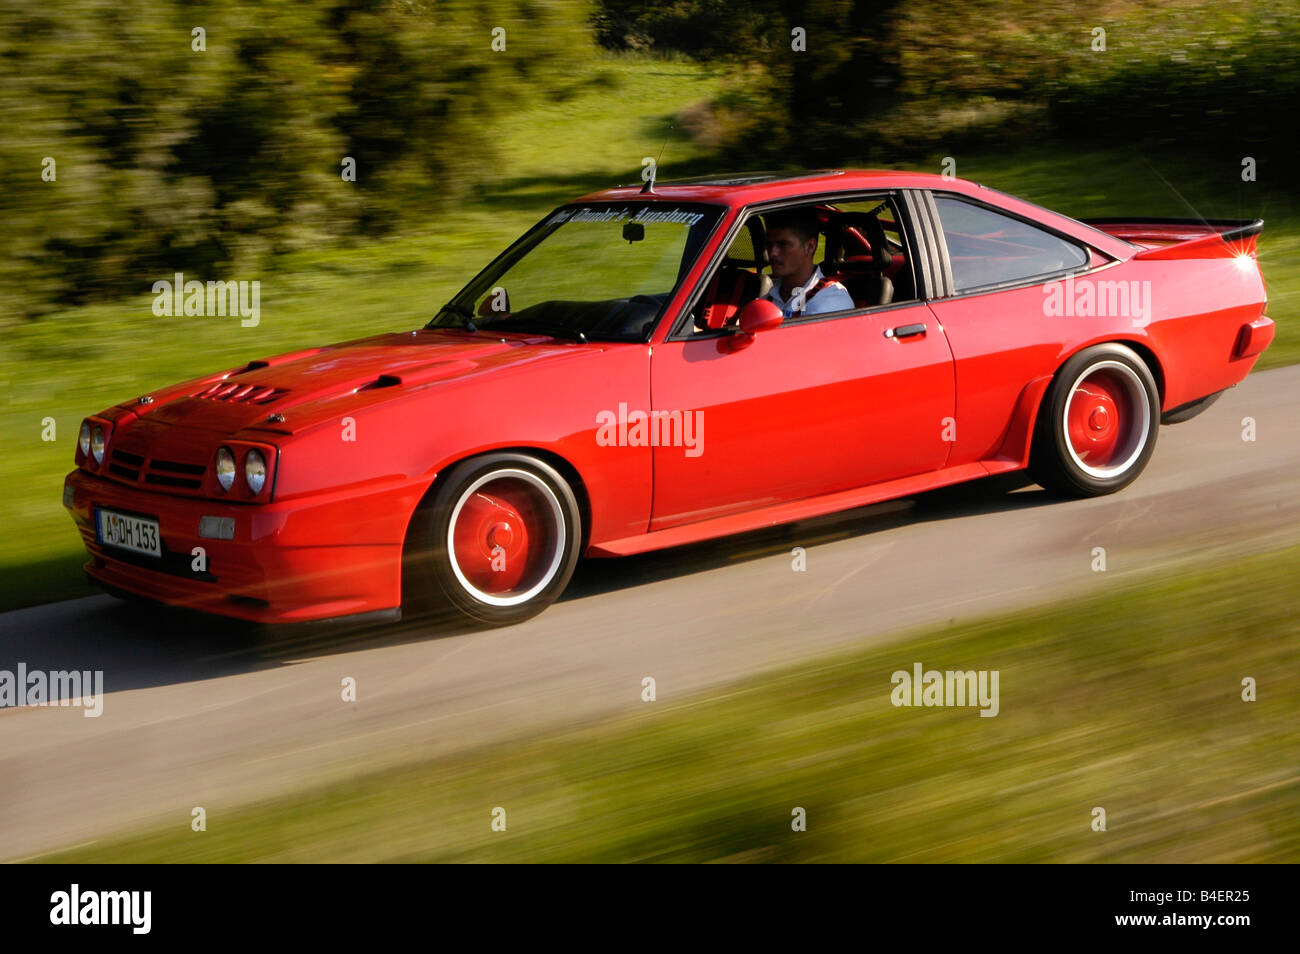 auto opel manta b baujahr 1983 rot coup coupe oldtimer 1980er jahre 80er jahre fahren. Black Bedroom Furniture Sets. Home Design Ideas